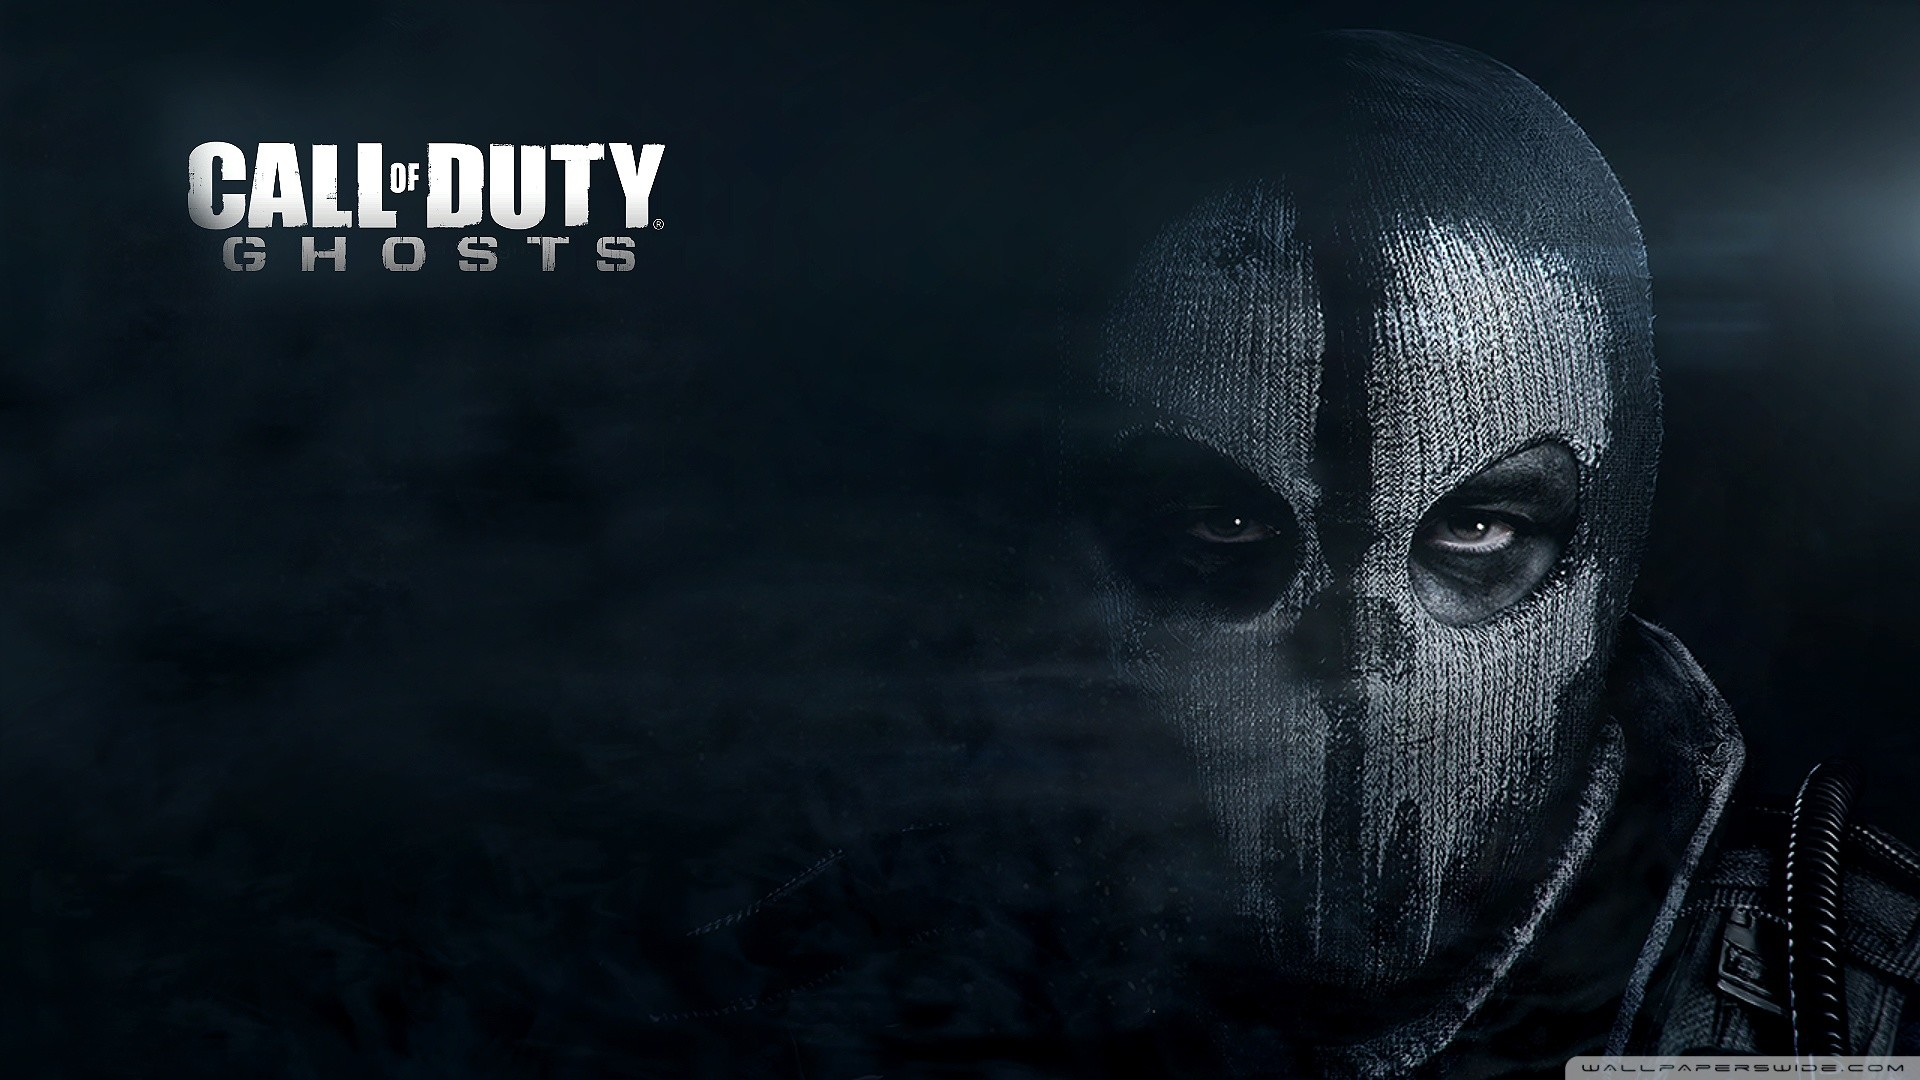 Hd Phone Wallpapers Fall Call Of Duty Ghost Wallpaper 81 Images